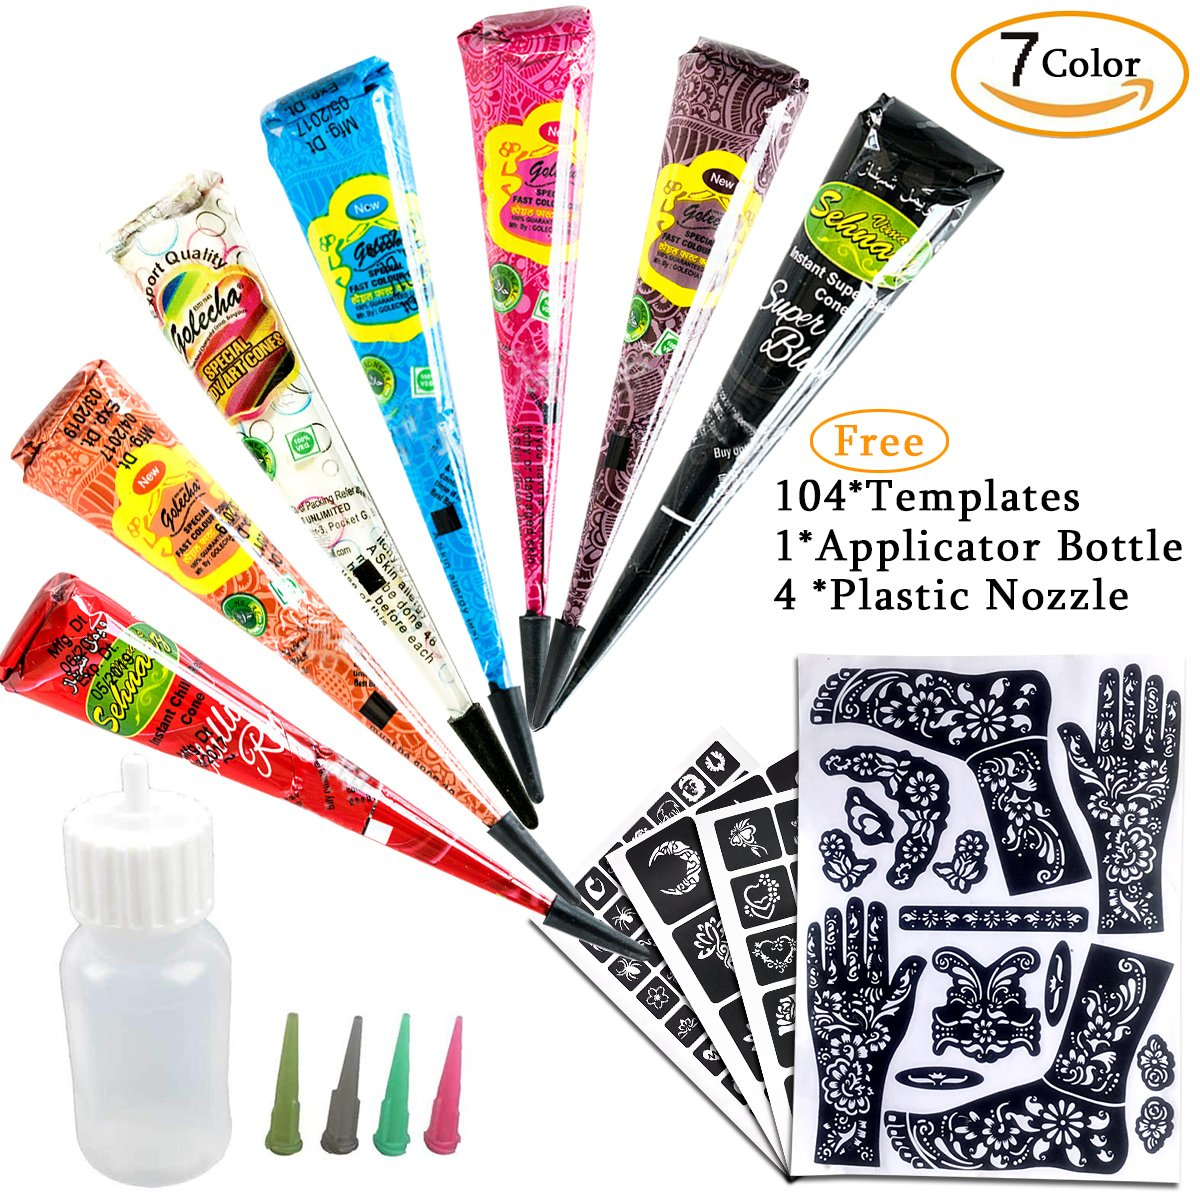 7Color Temporary Tattoo India Henna Kit Tattoo Paste Cone Body Art Painting Drawing with Free 104 pcs Tattoo Templates, 1 x Applicator Bottle and 4 x Plastic Nozzle by YLIANG by YLIANG